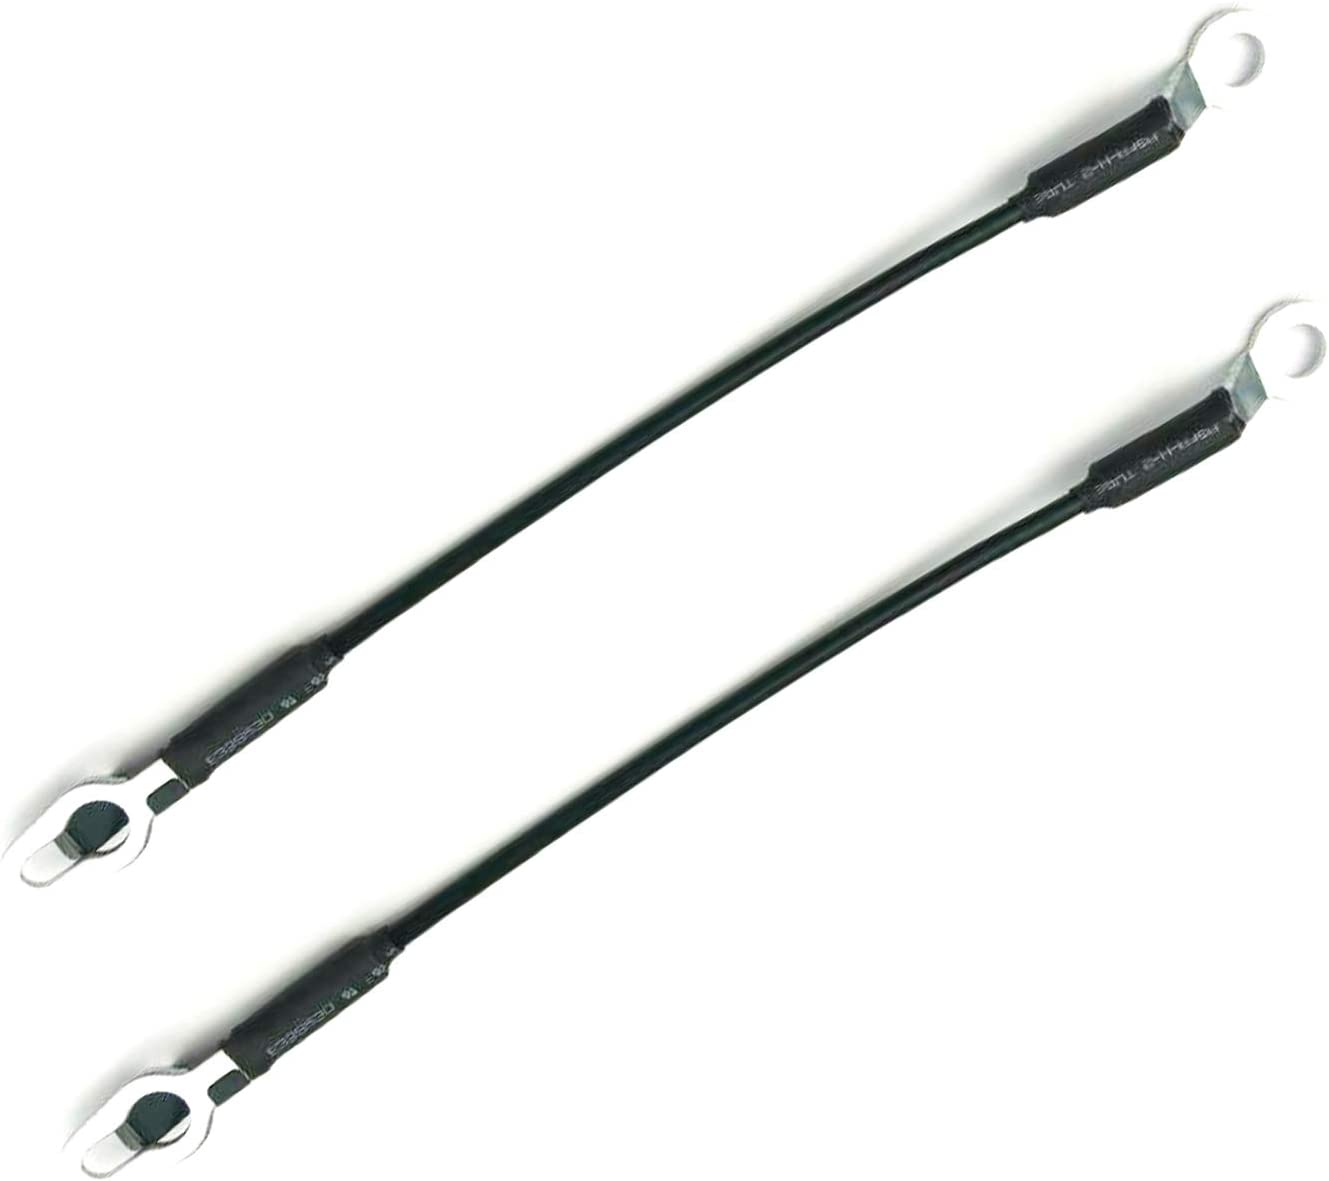 Tailgate Support Cable LH and RH for 99-06 Silverado Sierra 02-06 Avalanche H2 38536 16637944 JSD Pair 2 PCS